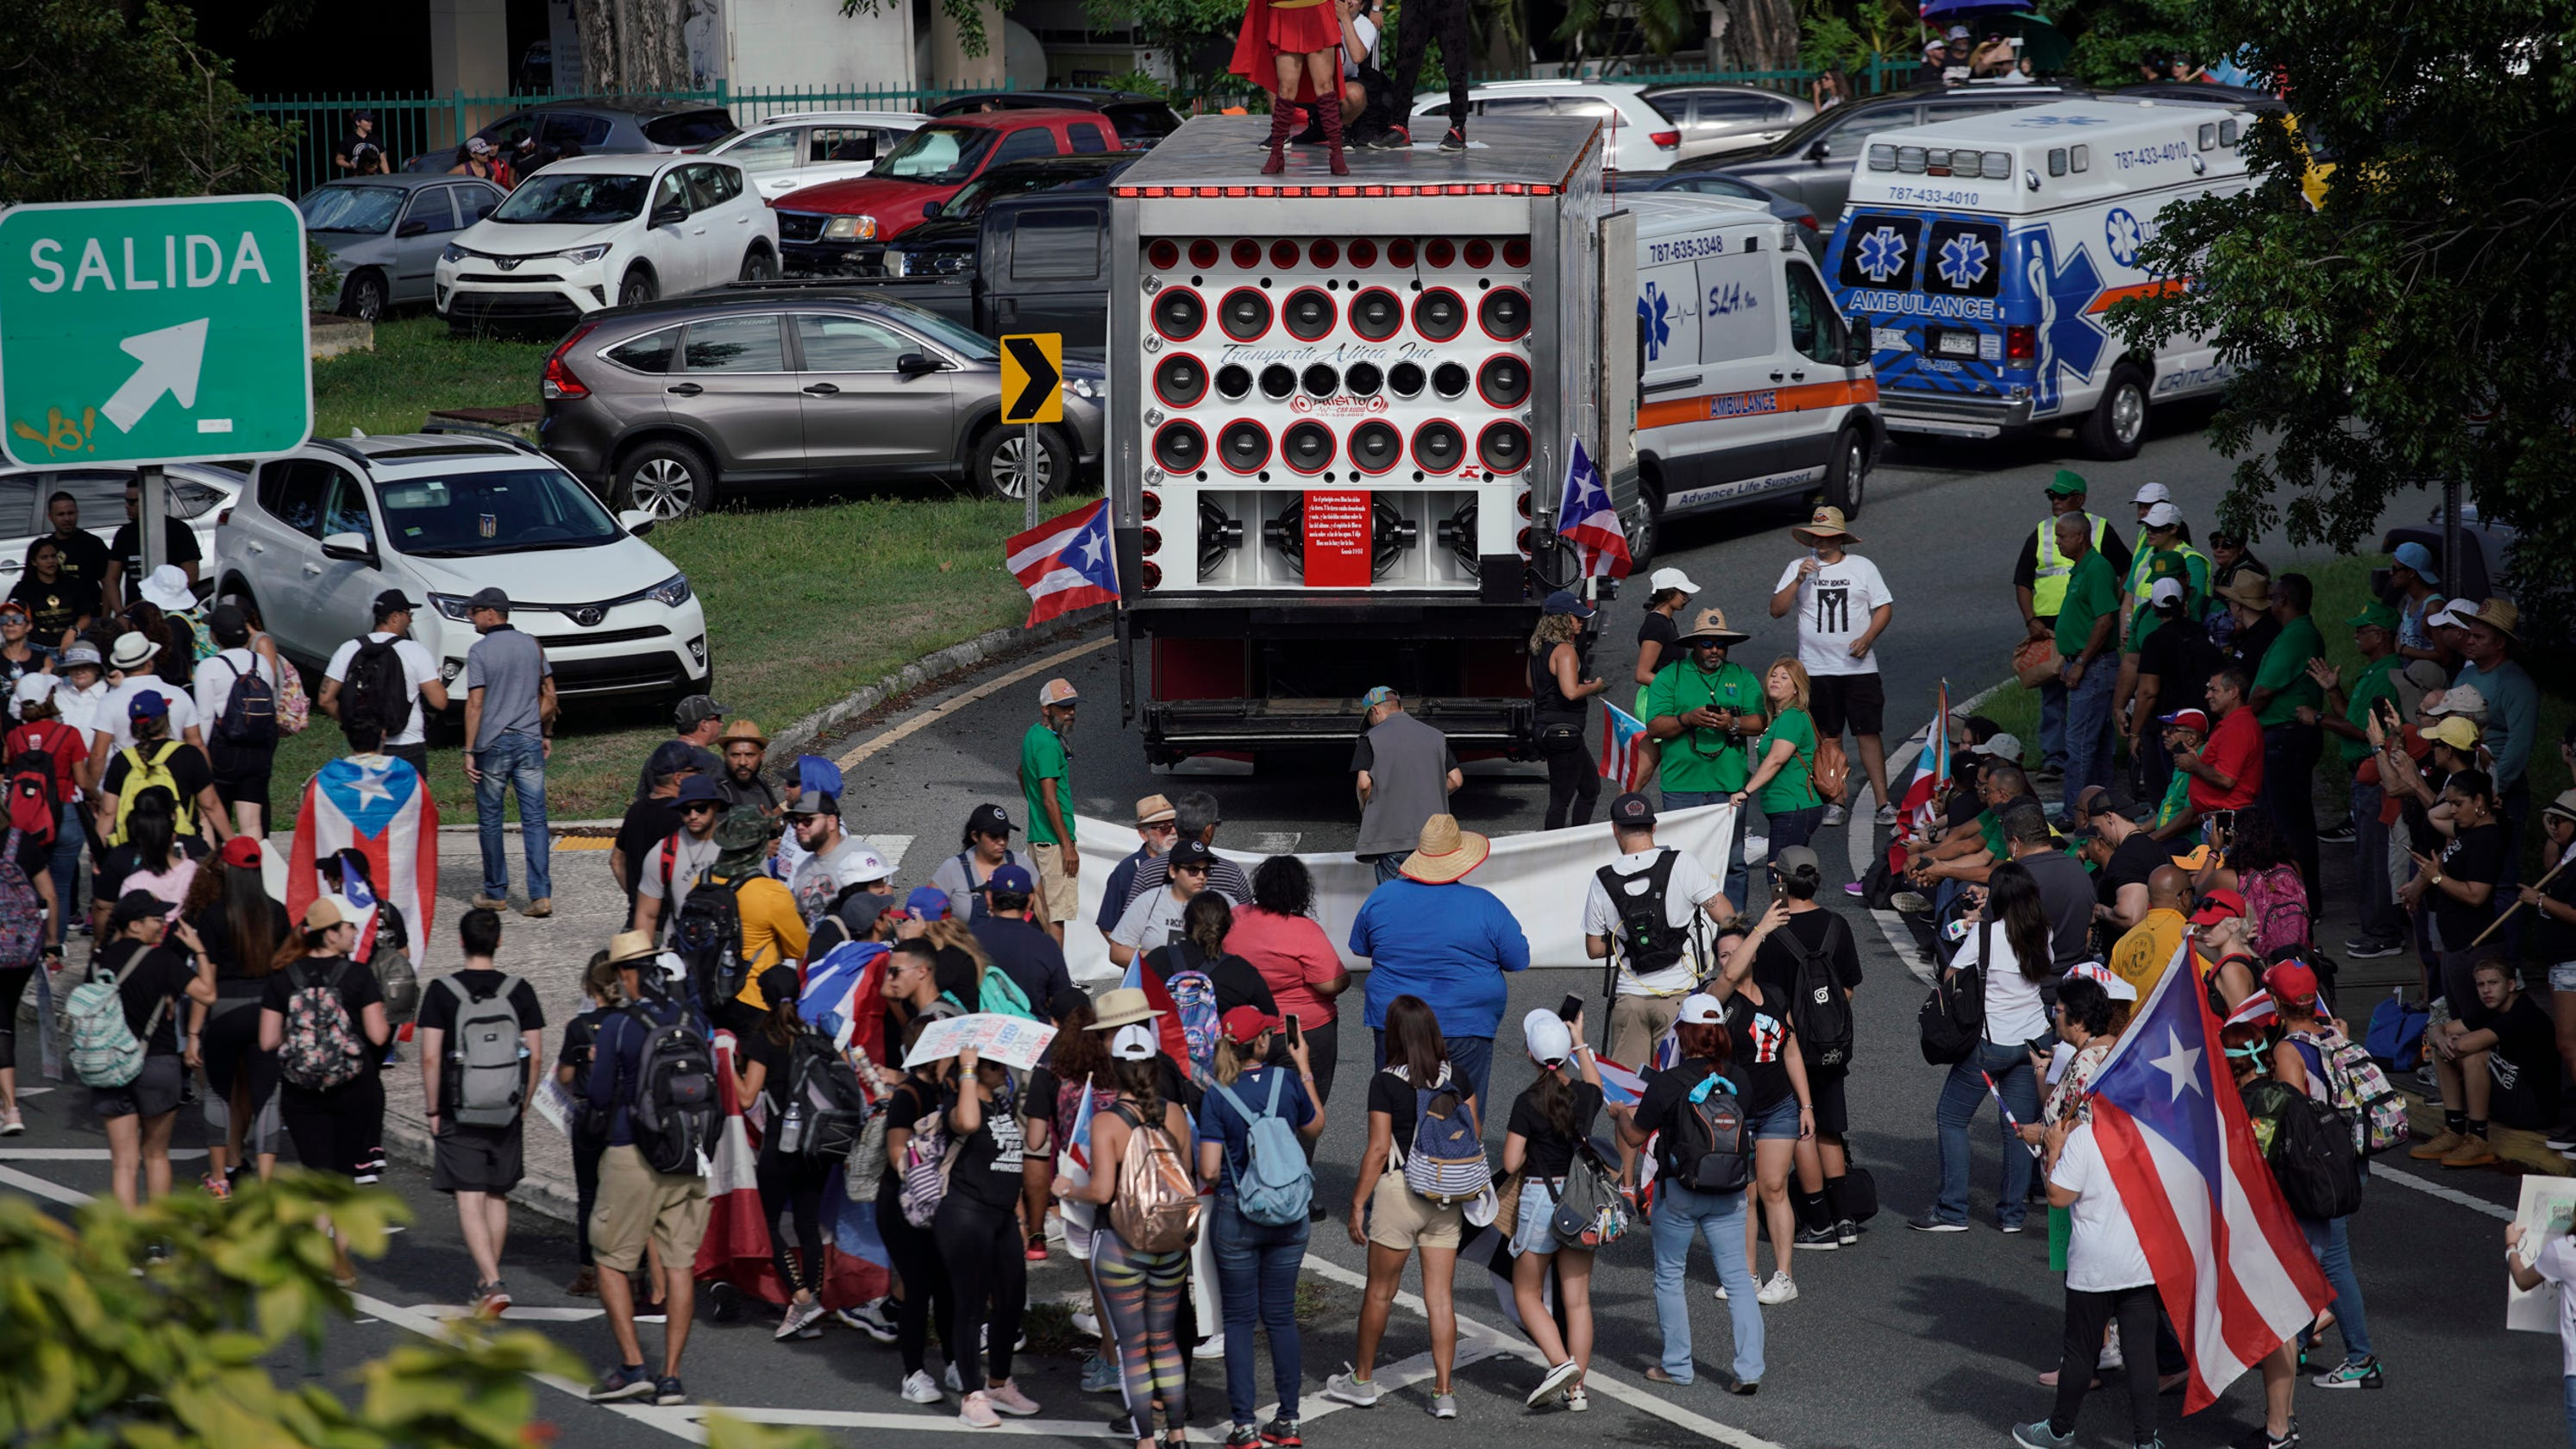 Royal Caribbean, MSC Cruises cancel port stops in Puerto Rico ahead of planned protests